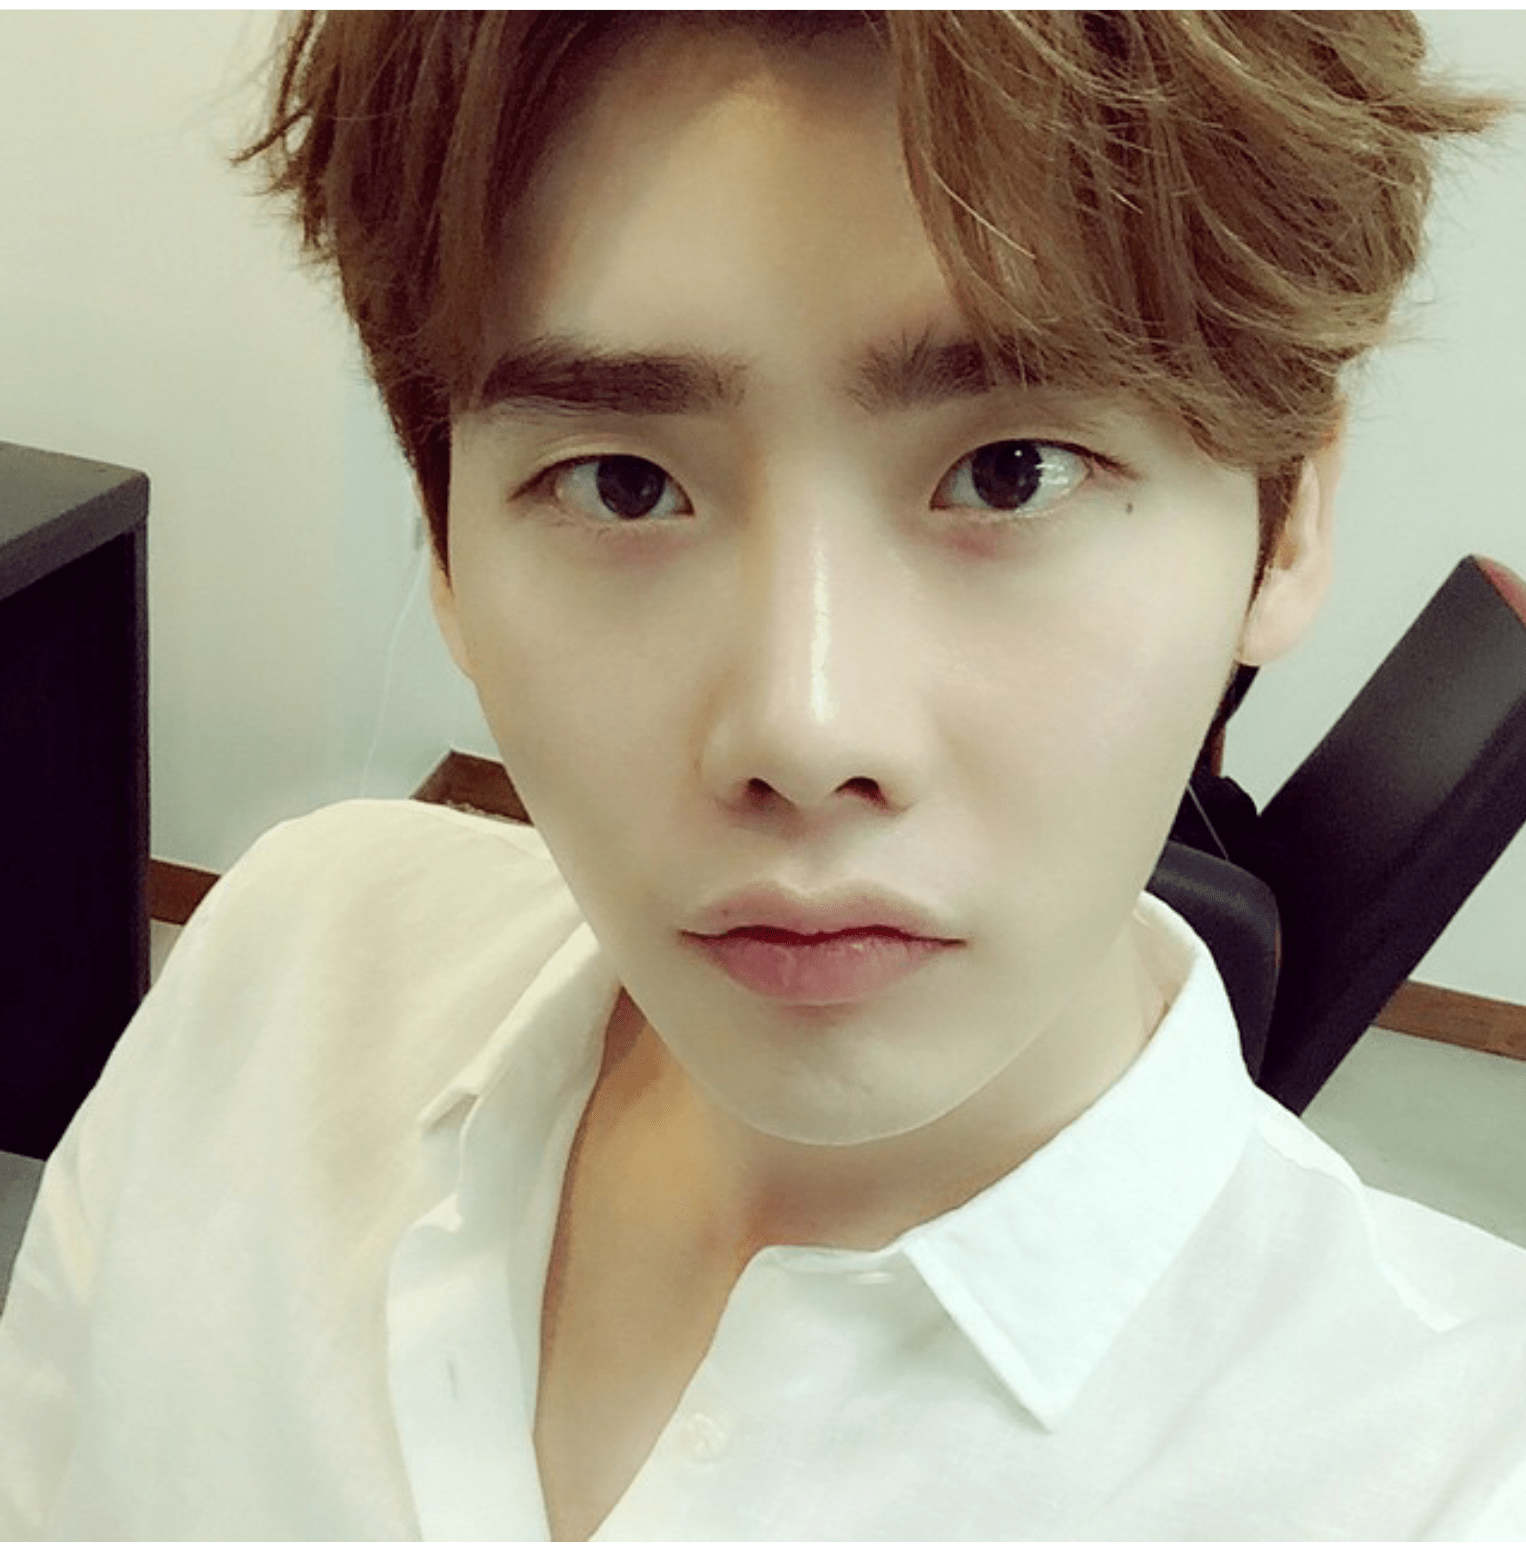 NEWS Lee Jong Suk Taking Legal Action Against